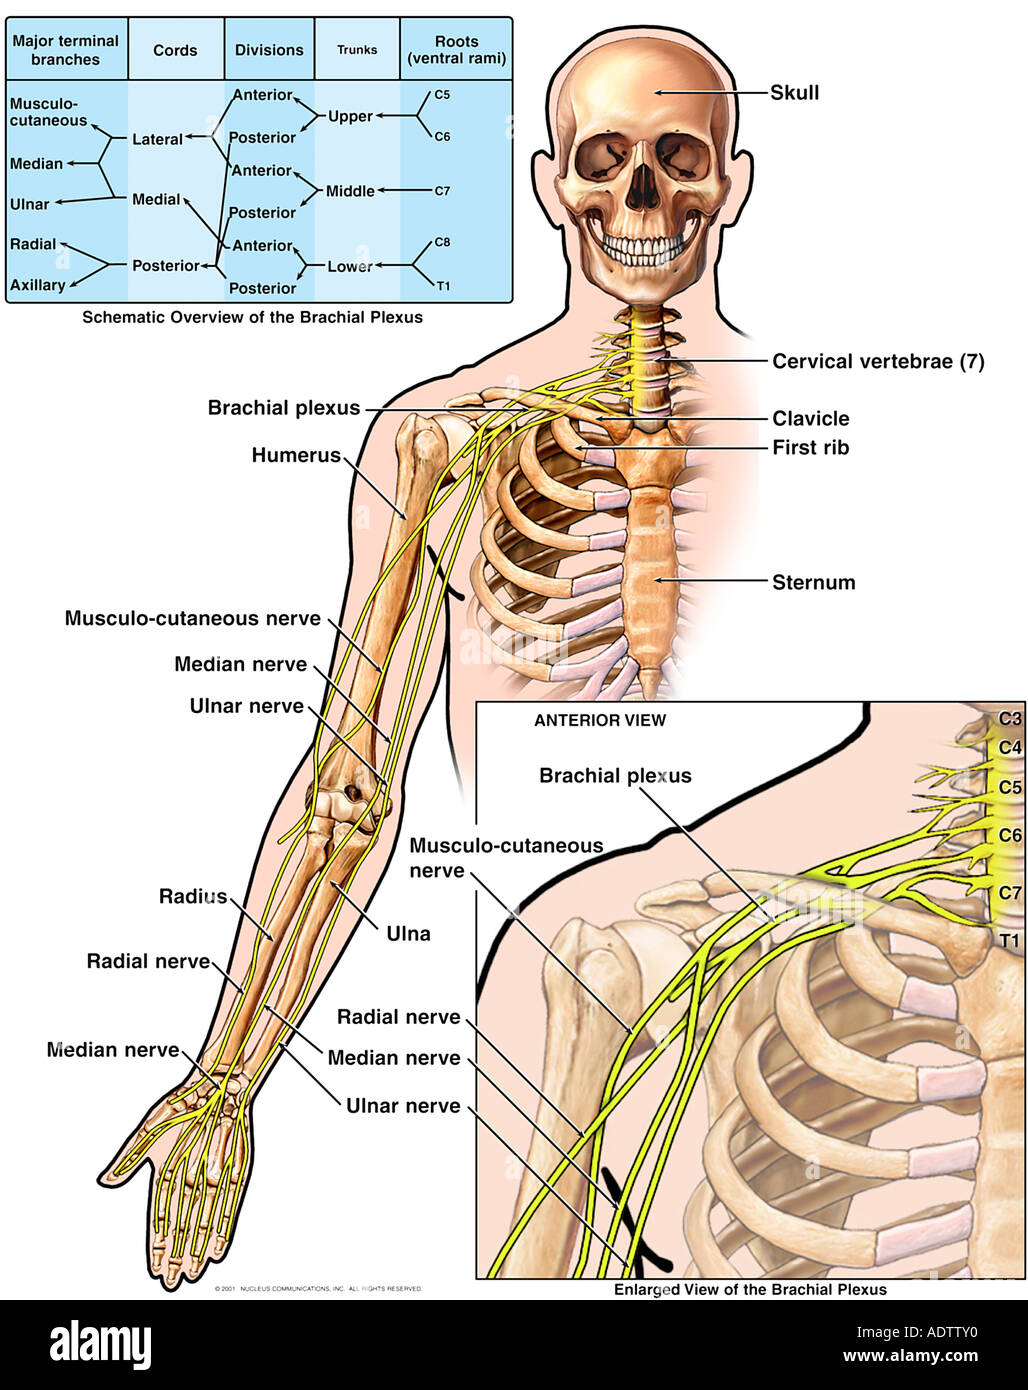 Anatomy of the Brachial Plexus Stock Photo: 7710383 - Alamy